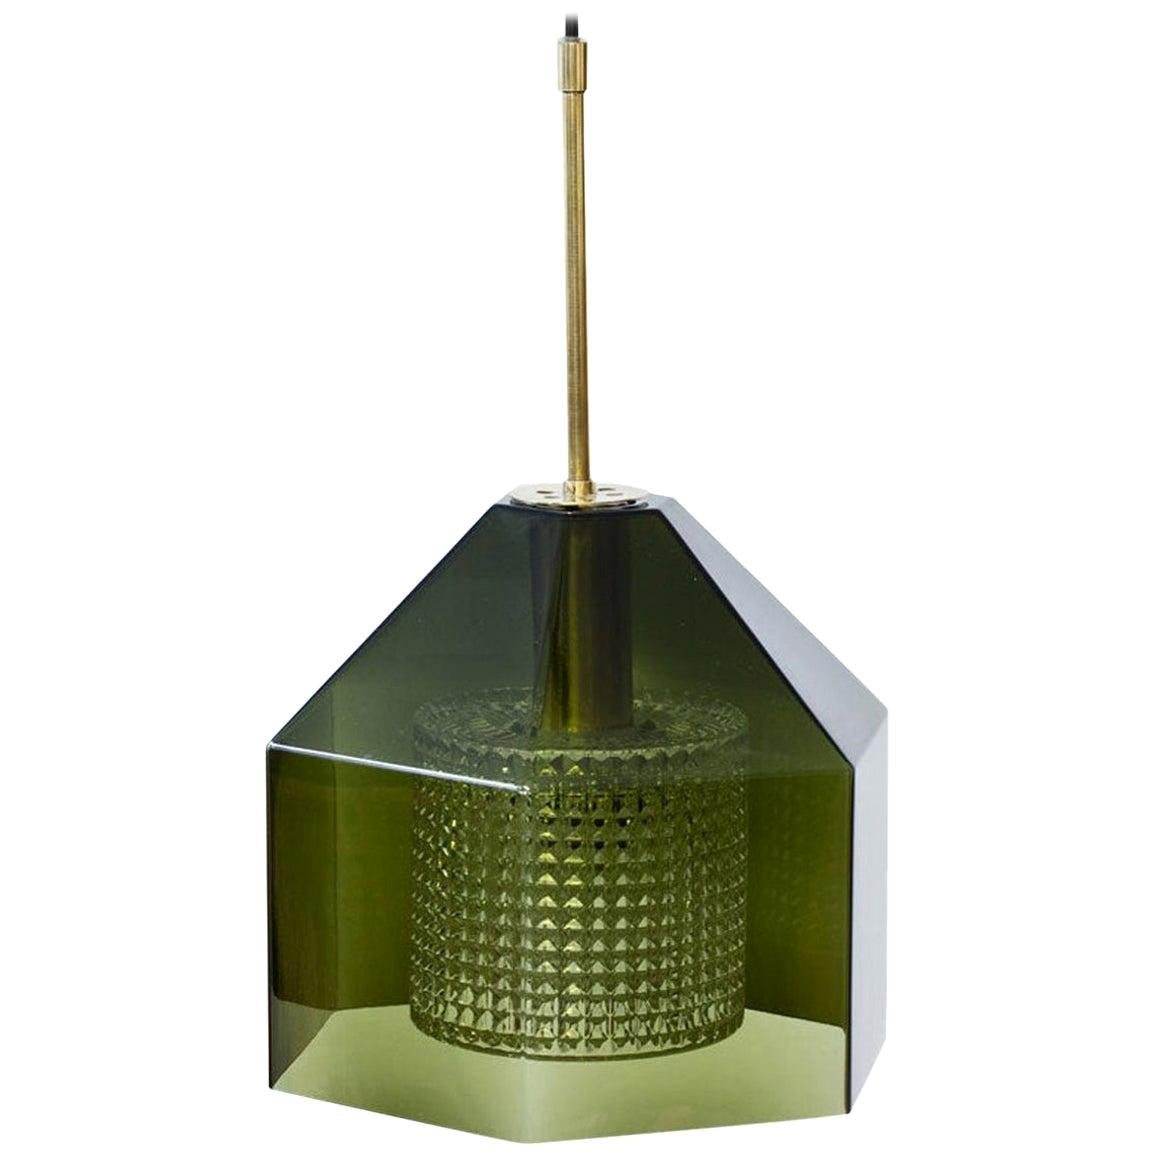 Glass & Brass Pendant Lamp by Carl Fagerlund for Orrefors, Sweden